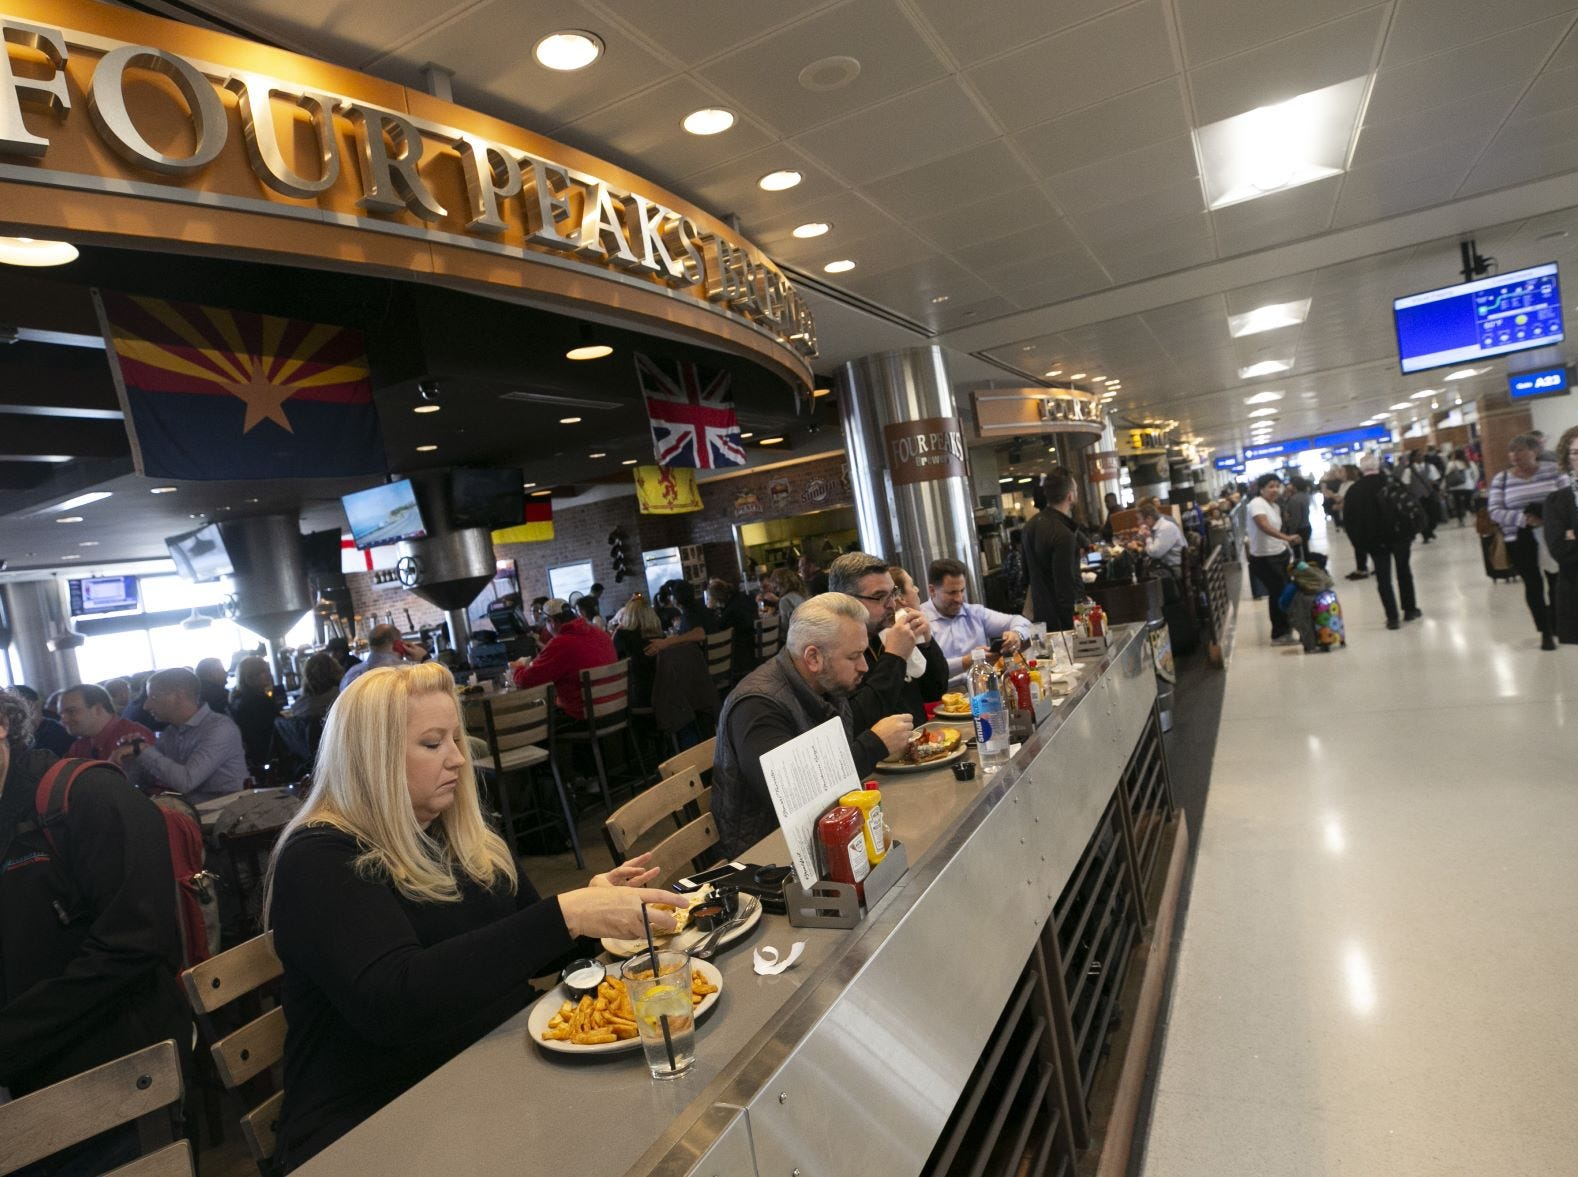 Michelle Ward of Surprise eats at Four Peaks Brewery in Terminal Four of Phoenix Sky Harbor International Airport on Tuesday, November 13, 2018.